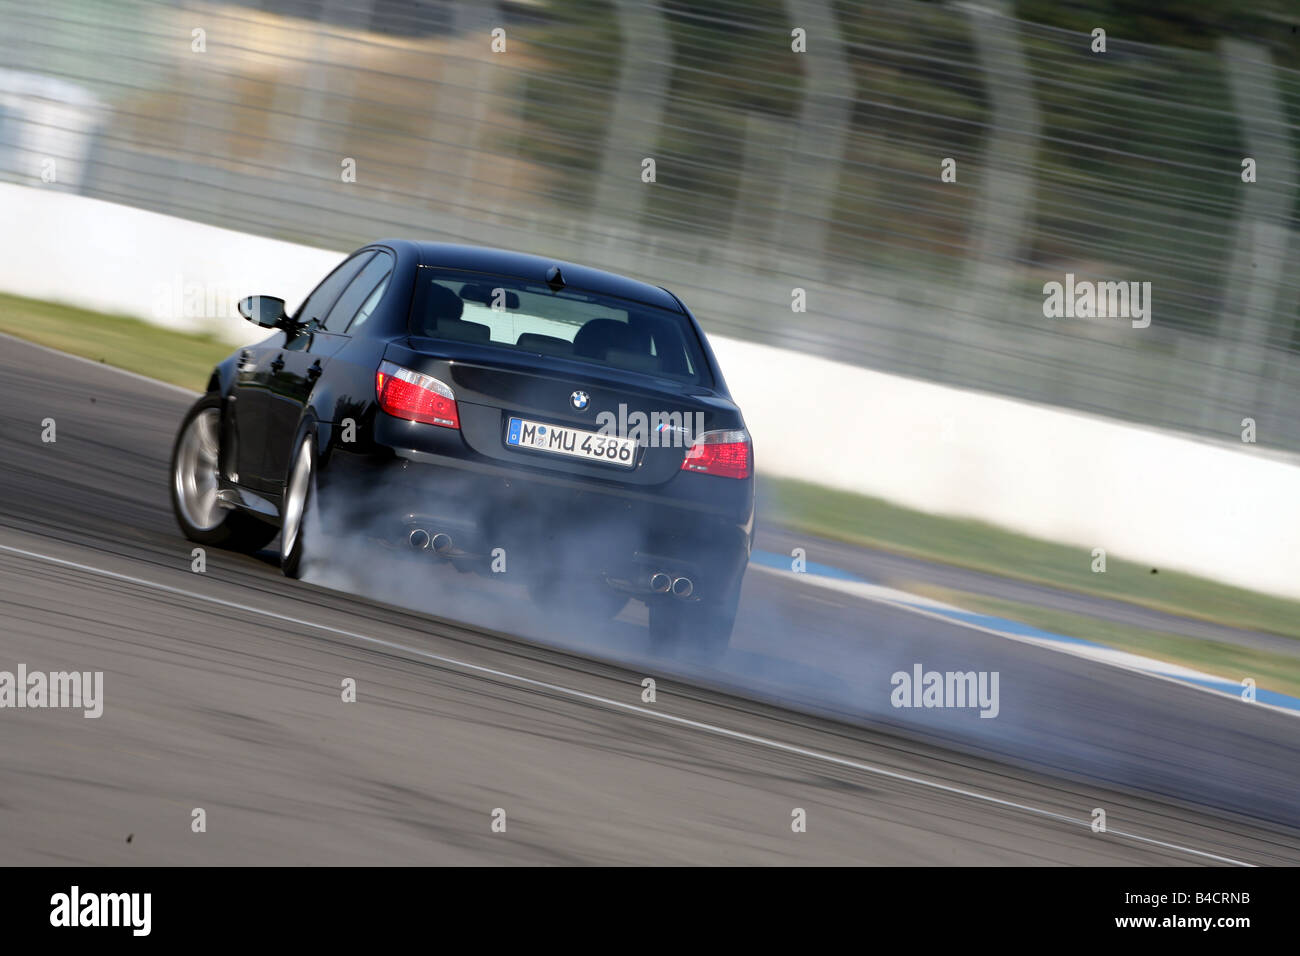 Bmw M5 Model Year 2005 Black Driving Diagonal From The Back Stock Photo Alamy